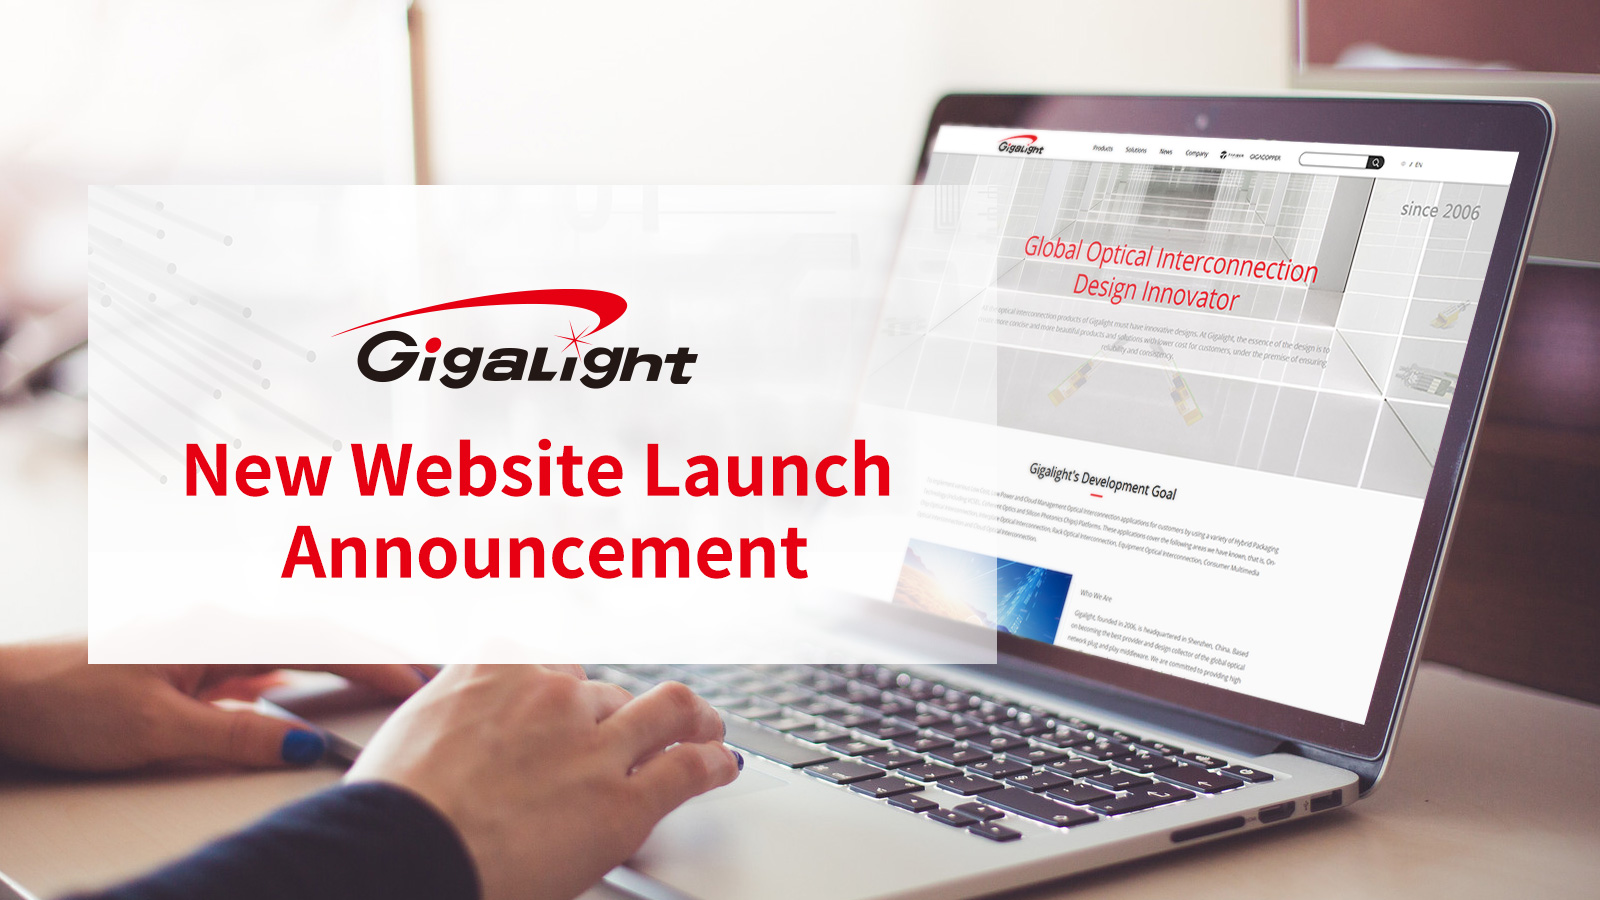 Gigalight New Website Launch Announcement